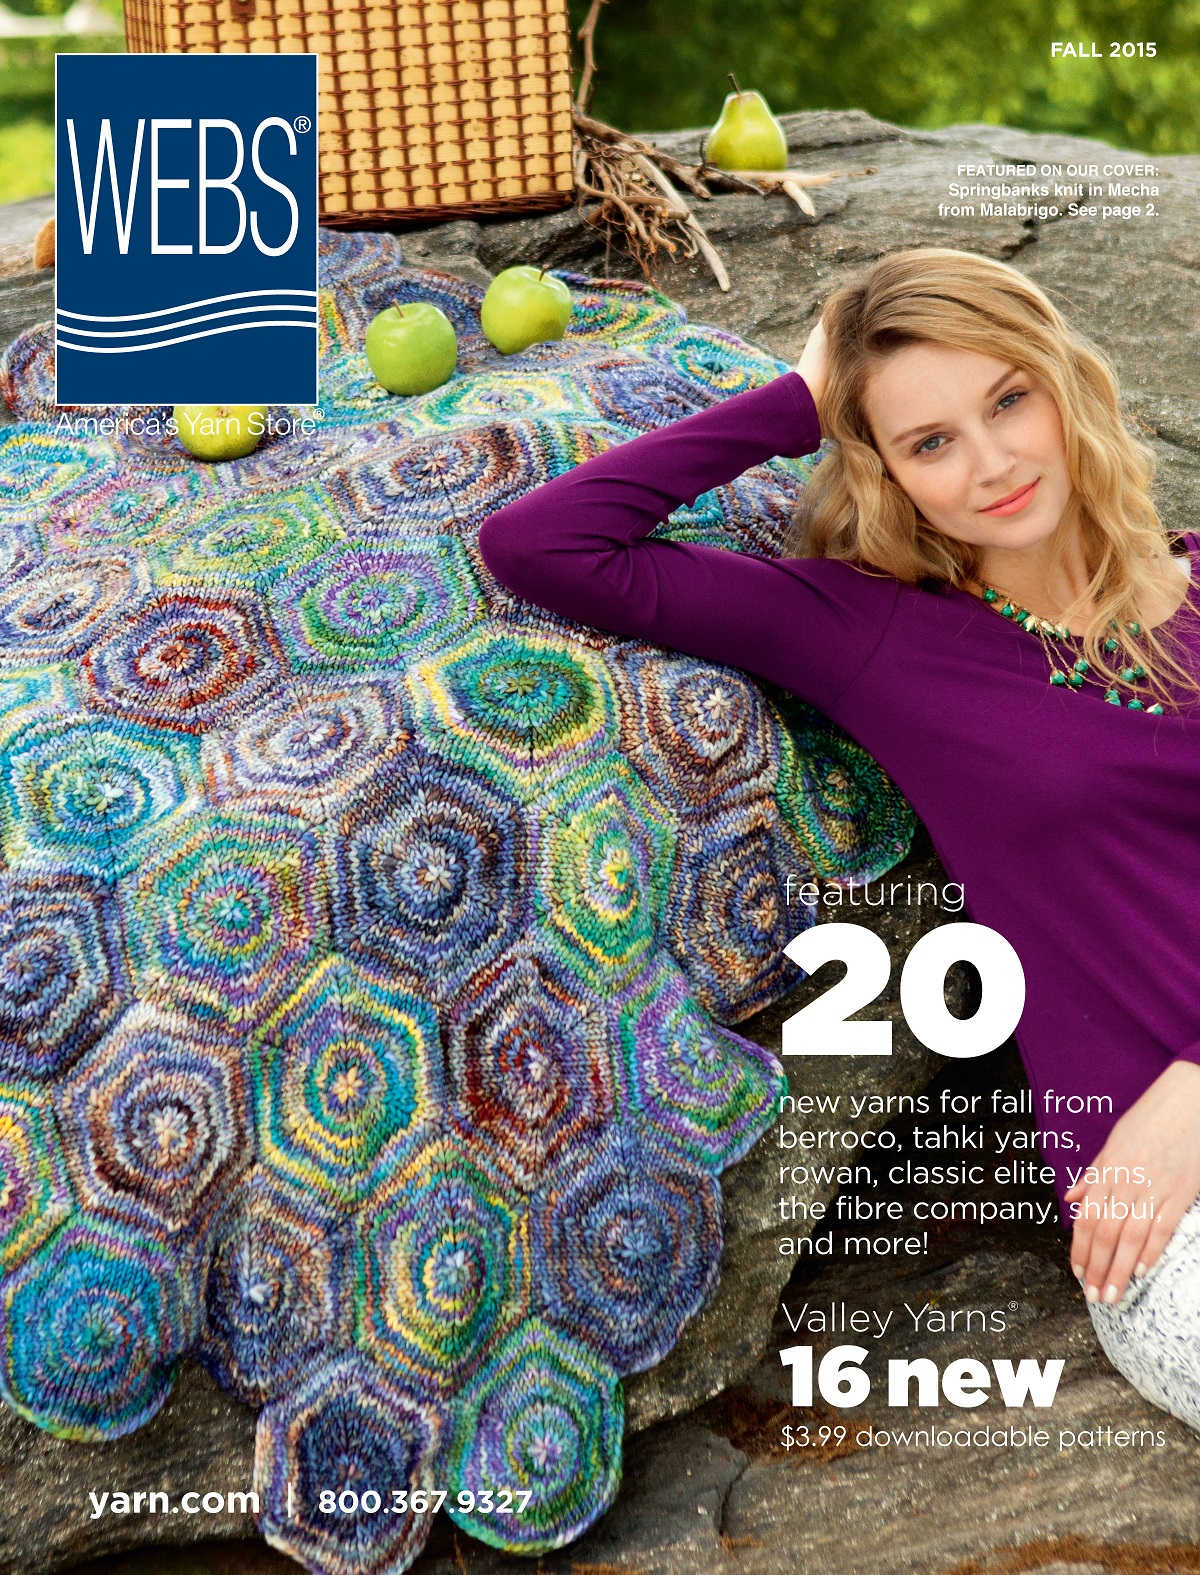 WEBS Fall 2015 Catalog, browse online now! Read more on the WEBS Blog at blog.yarn.com